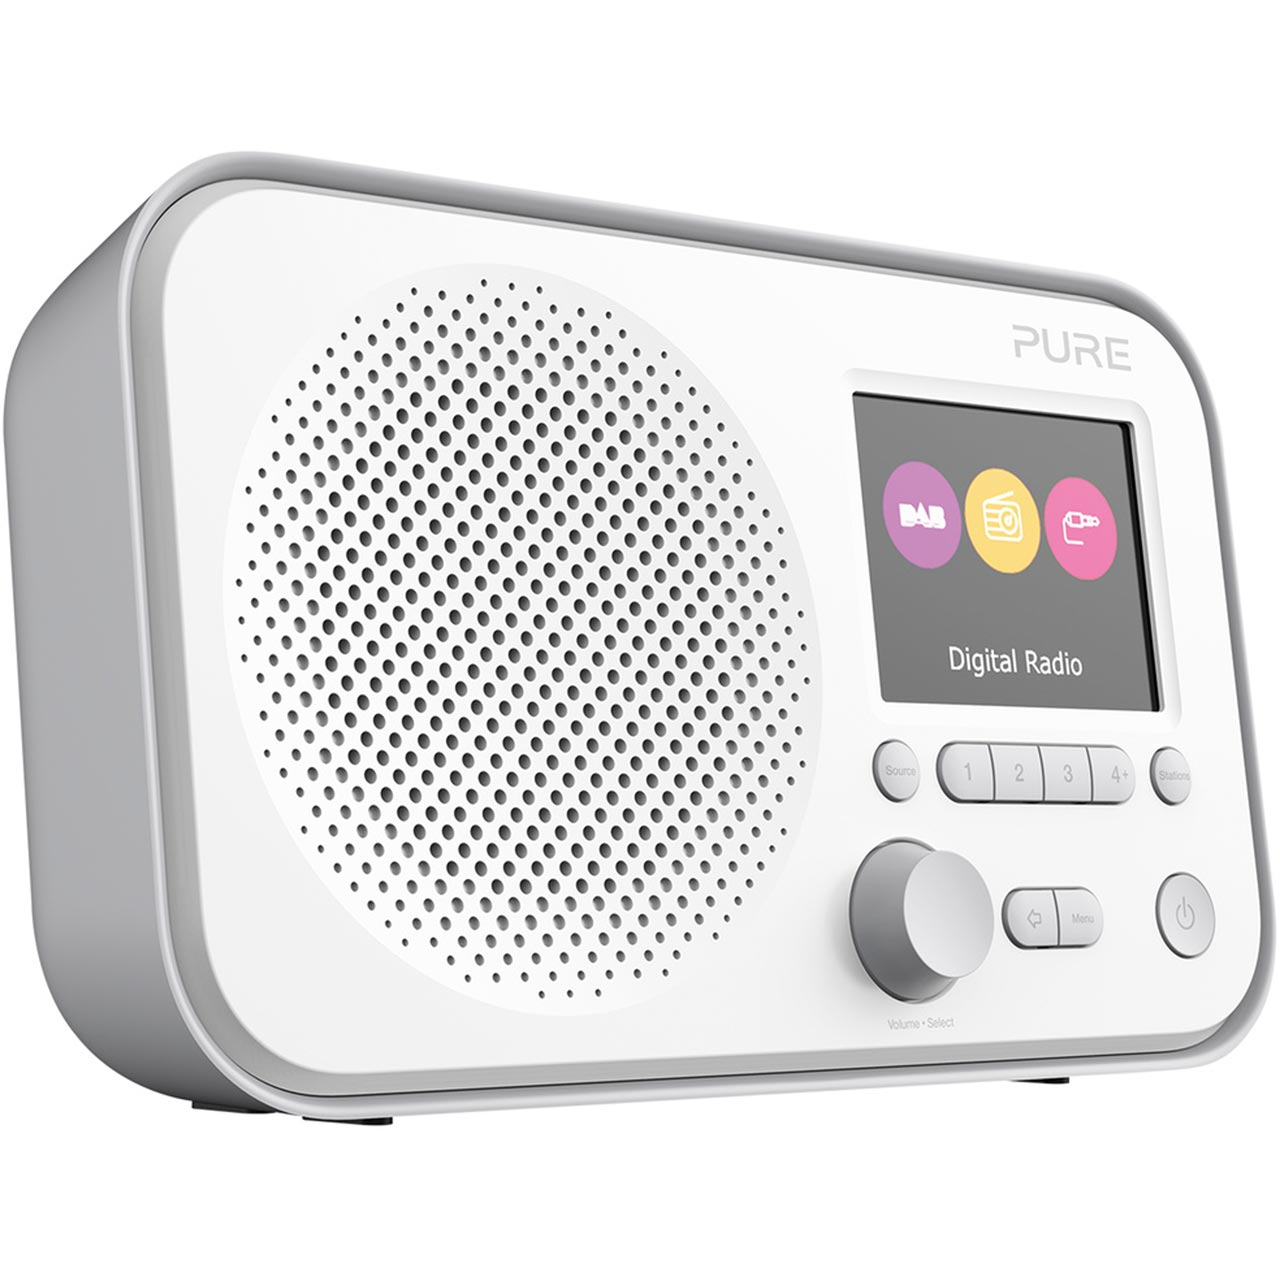 Pure Elan E3 Portable Radio DAB/FM - Grey